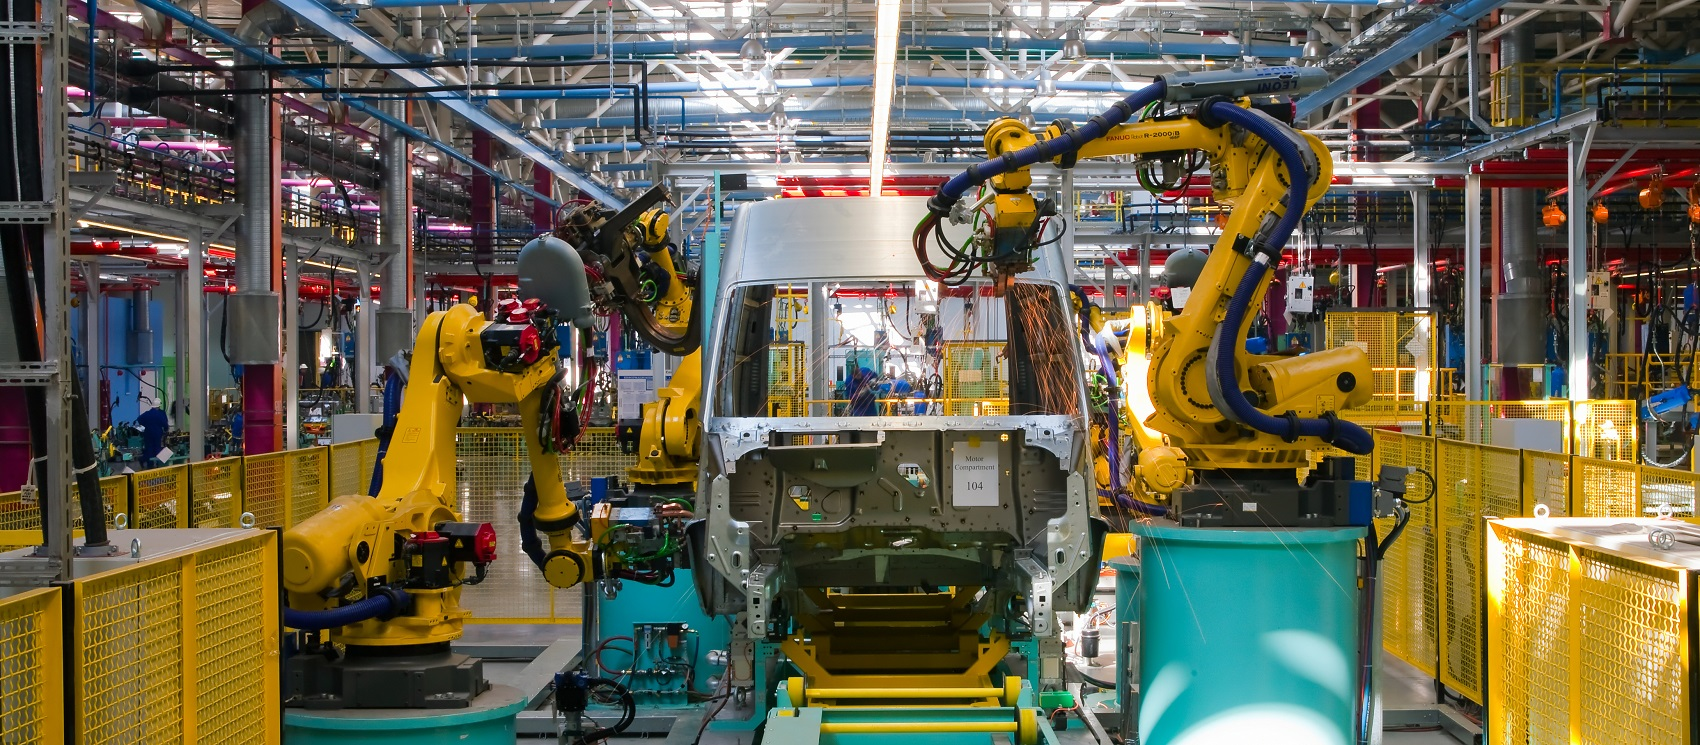 Does Industrial Iot Need A Fresh Security Approach